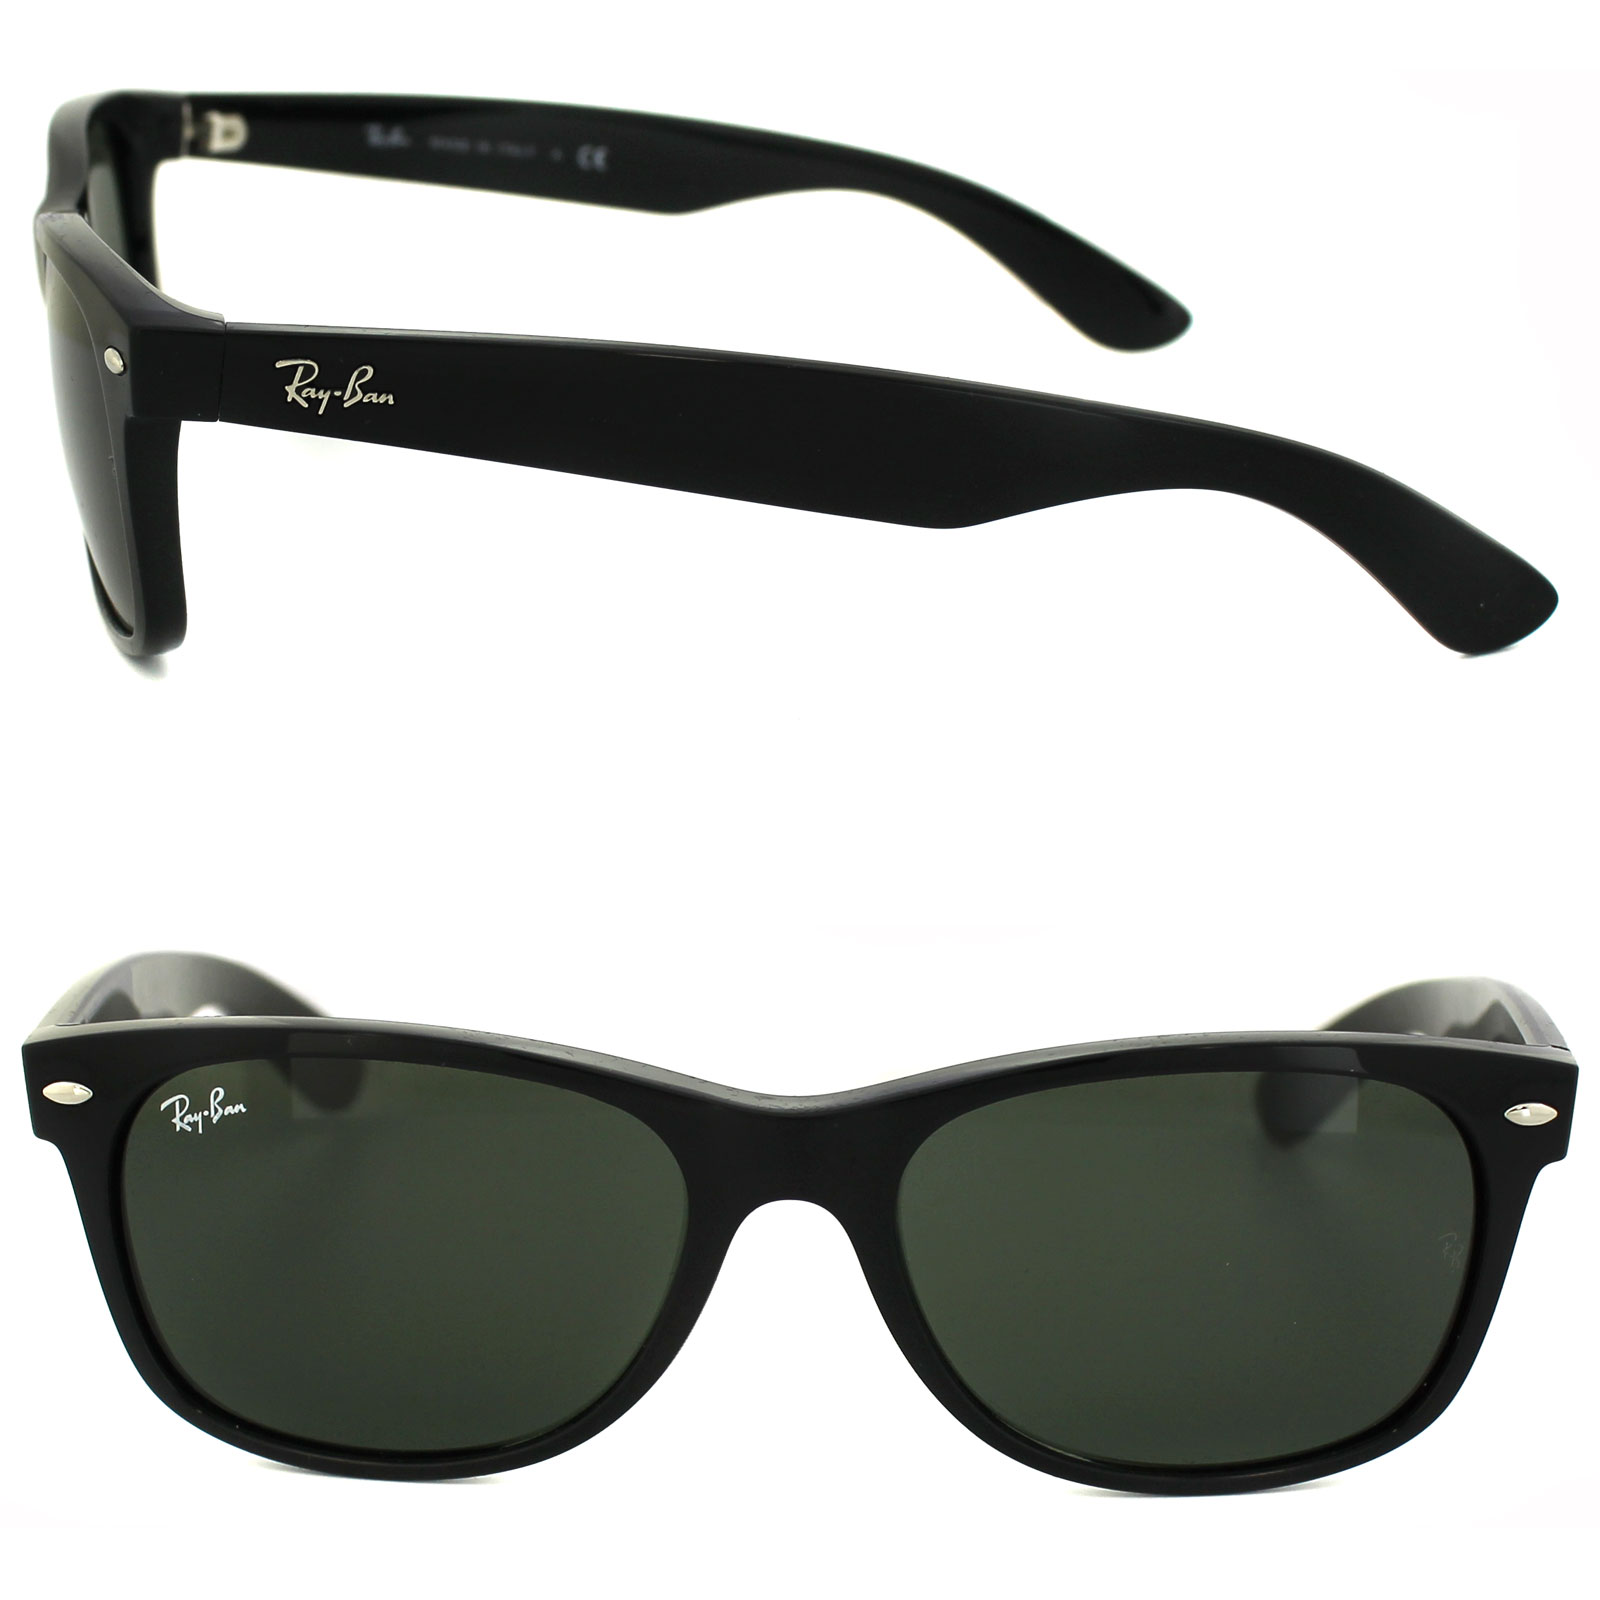 ... Ray-Ban New Wayfarer 2132 Sunglasses Thumbnail 2 ...